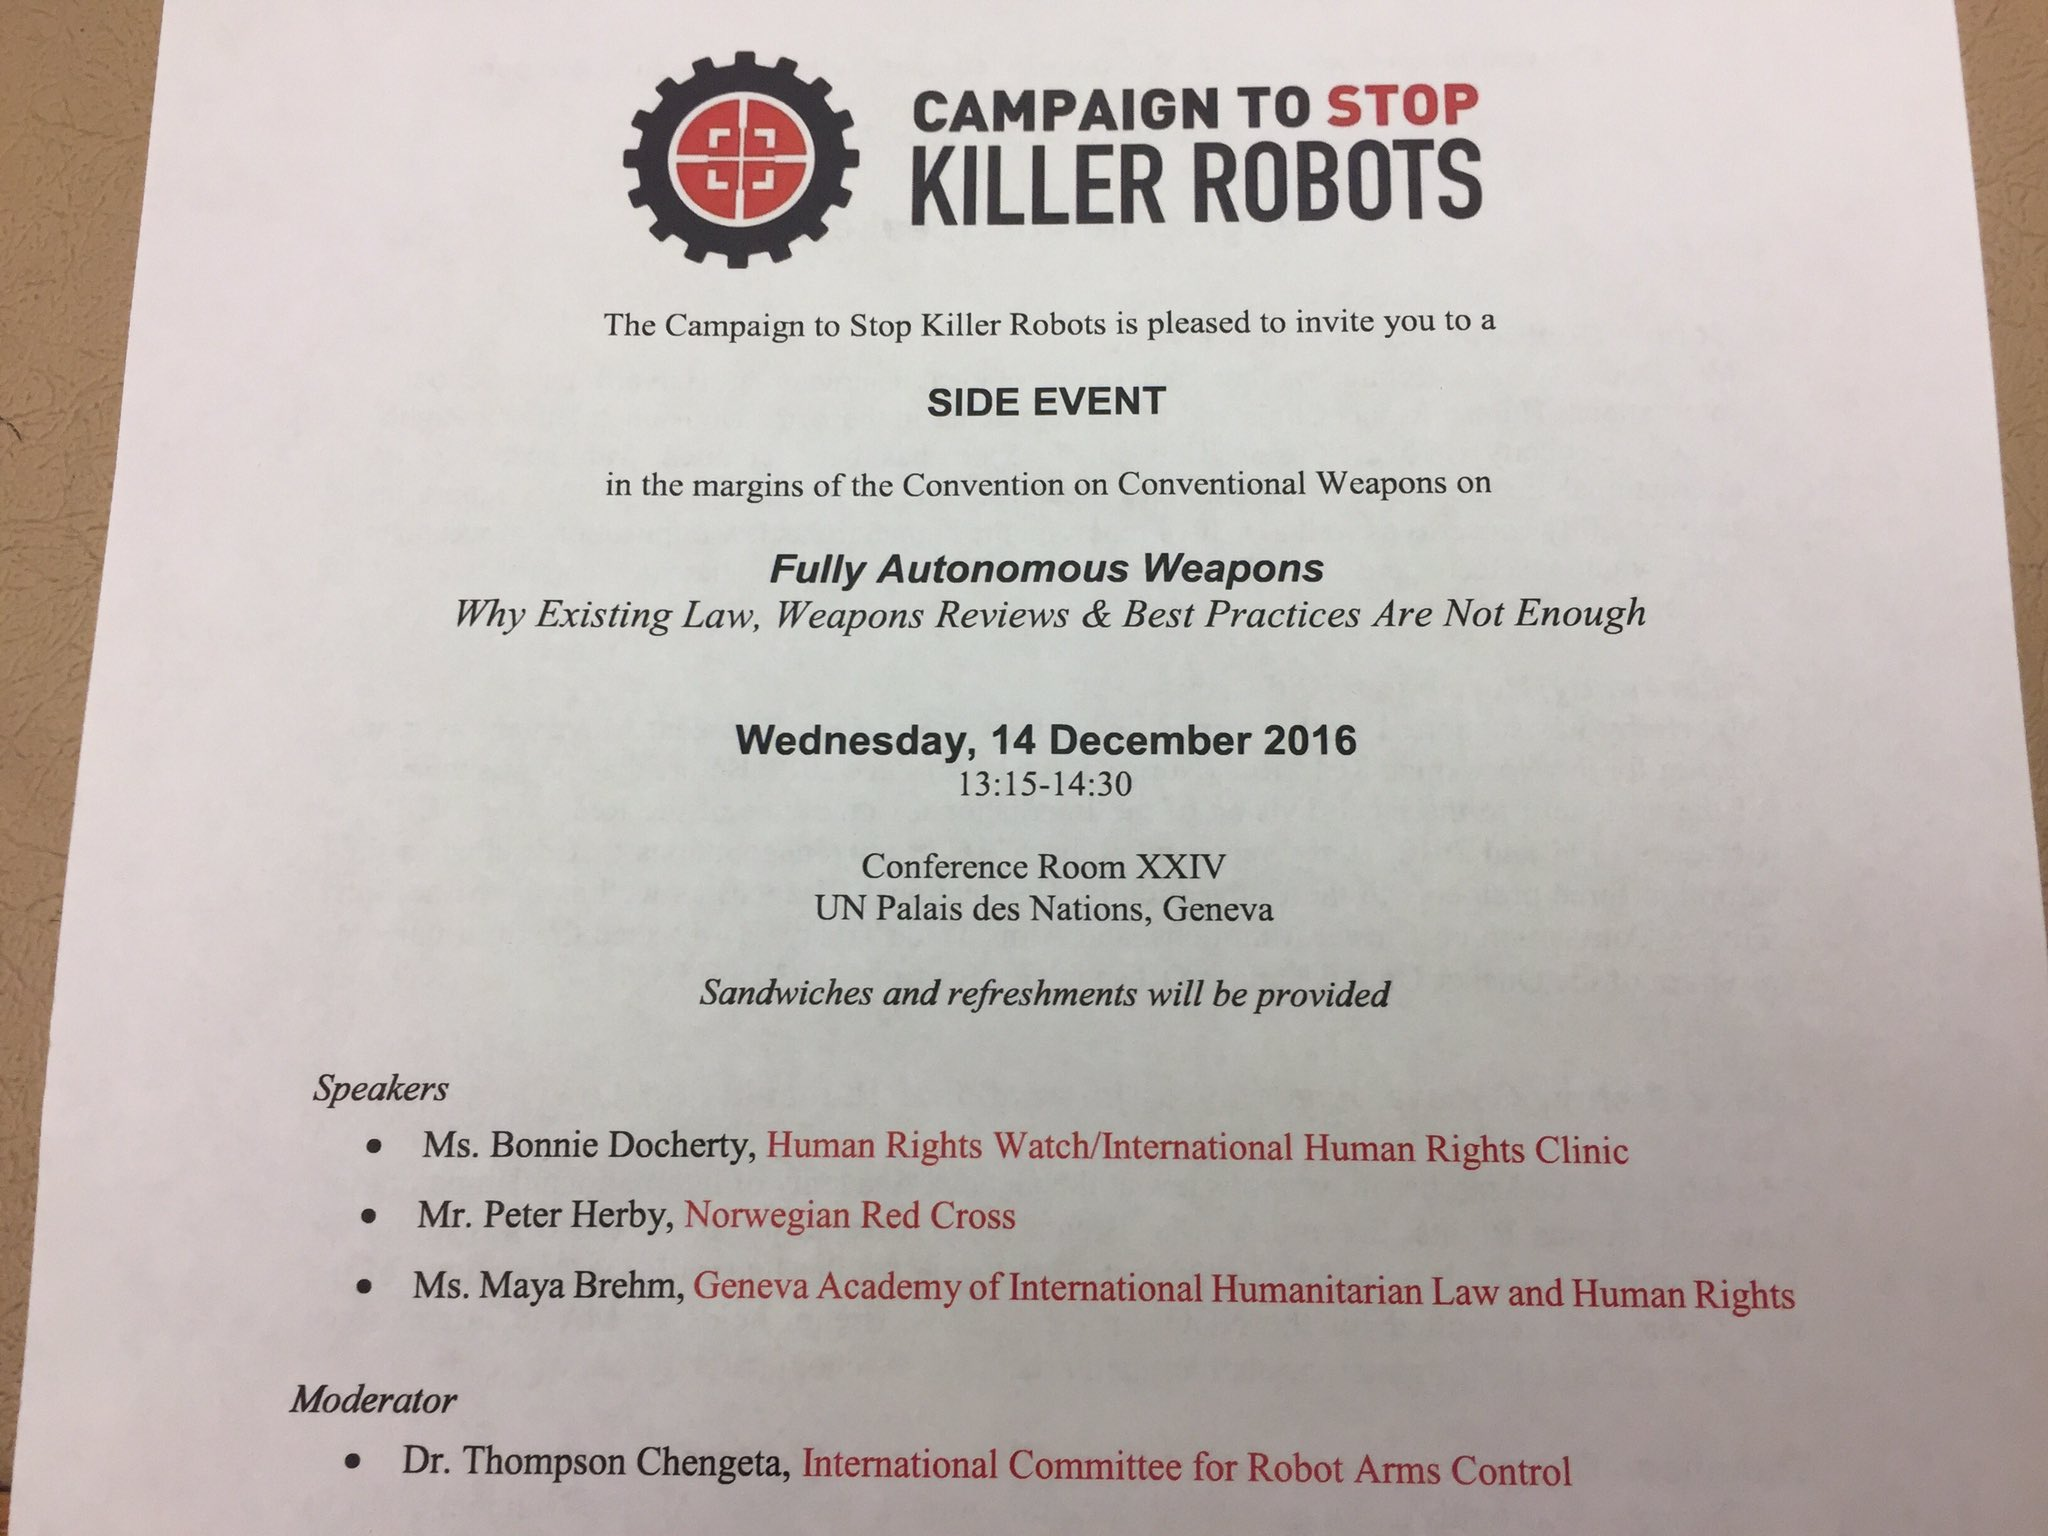 Our side event briefing at #CCWUN today focuses on legal challenges & lethal autonomous weapons. Features an all-star line-up + sandwiches! https://t.co/OfAvwfsHCZ